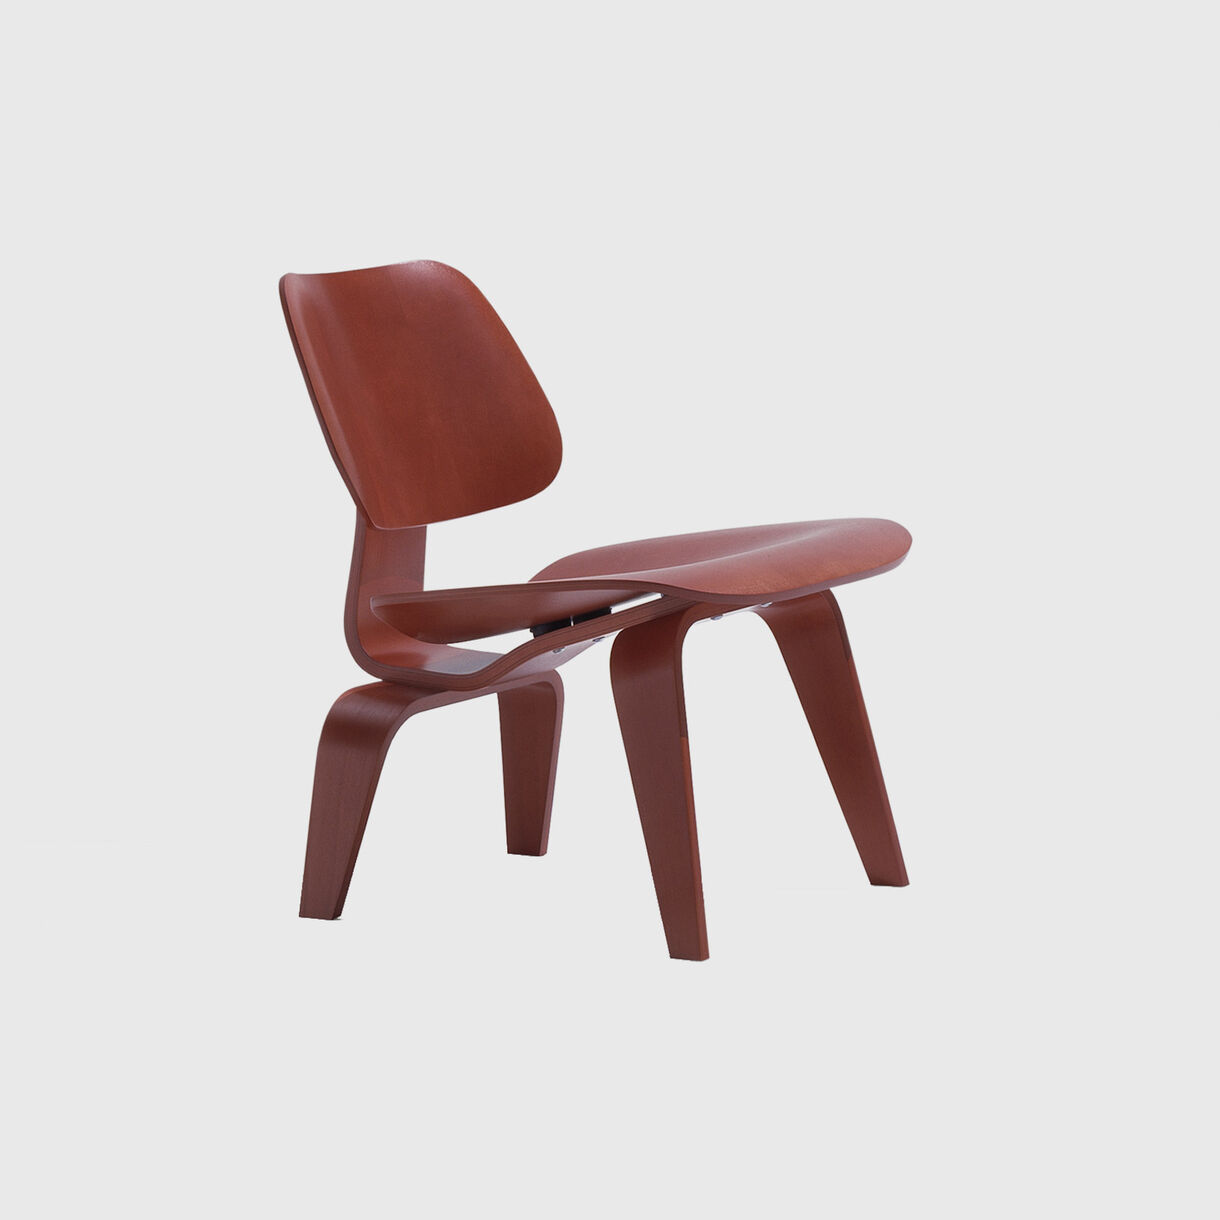 Eames Moulded Plywood Lounge Chair, Wood Base, Red Stain